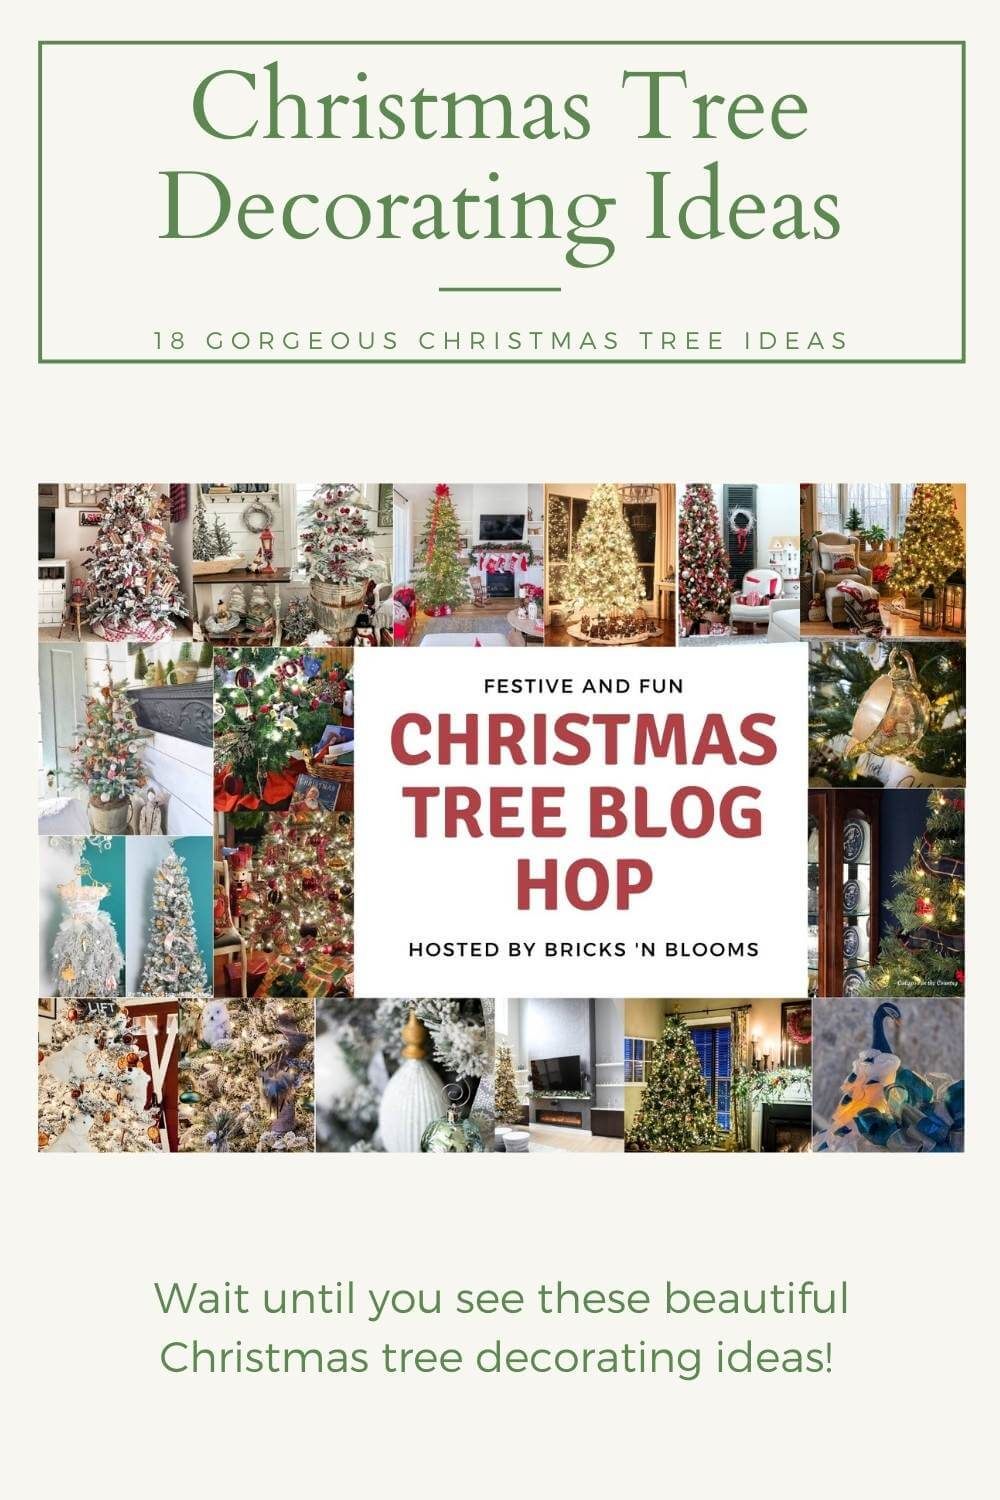 Festive and Fun Christmas Tree Blog Hop featuring 18 Different Trees